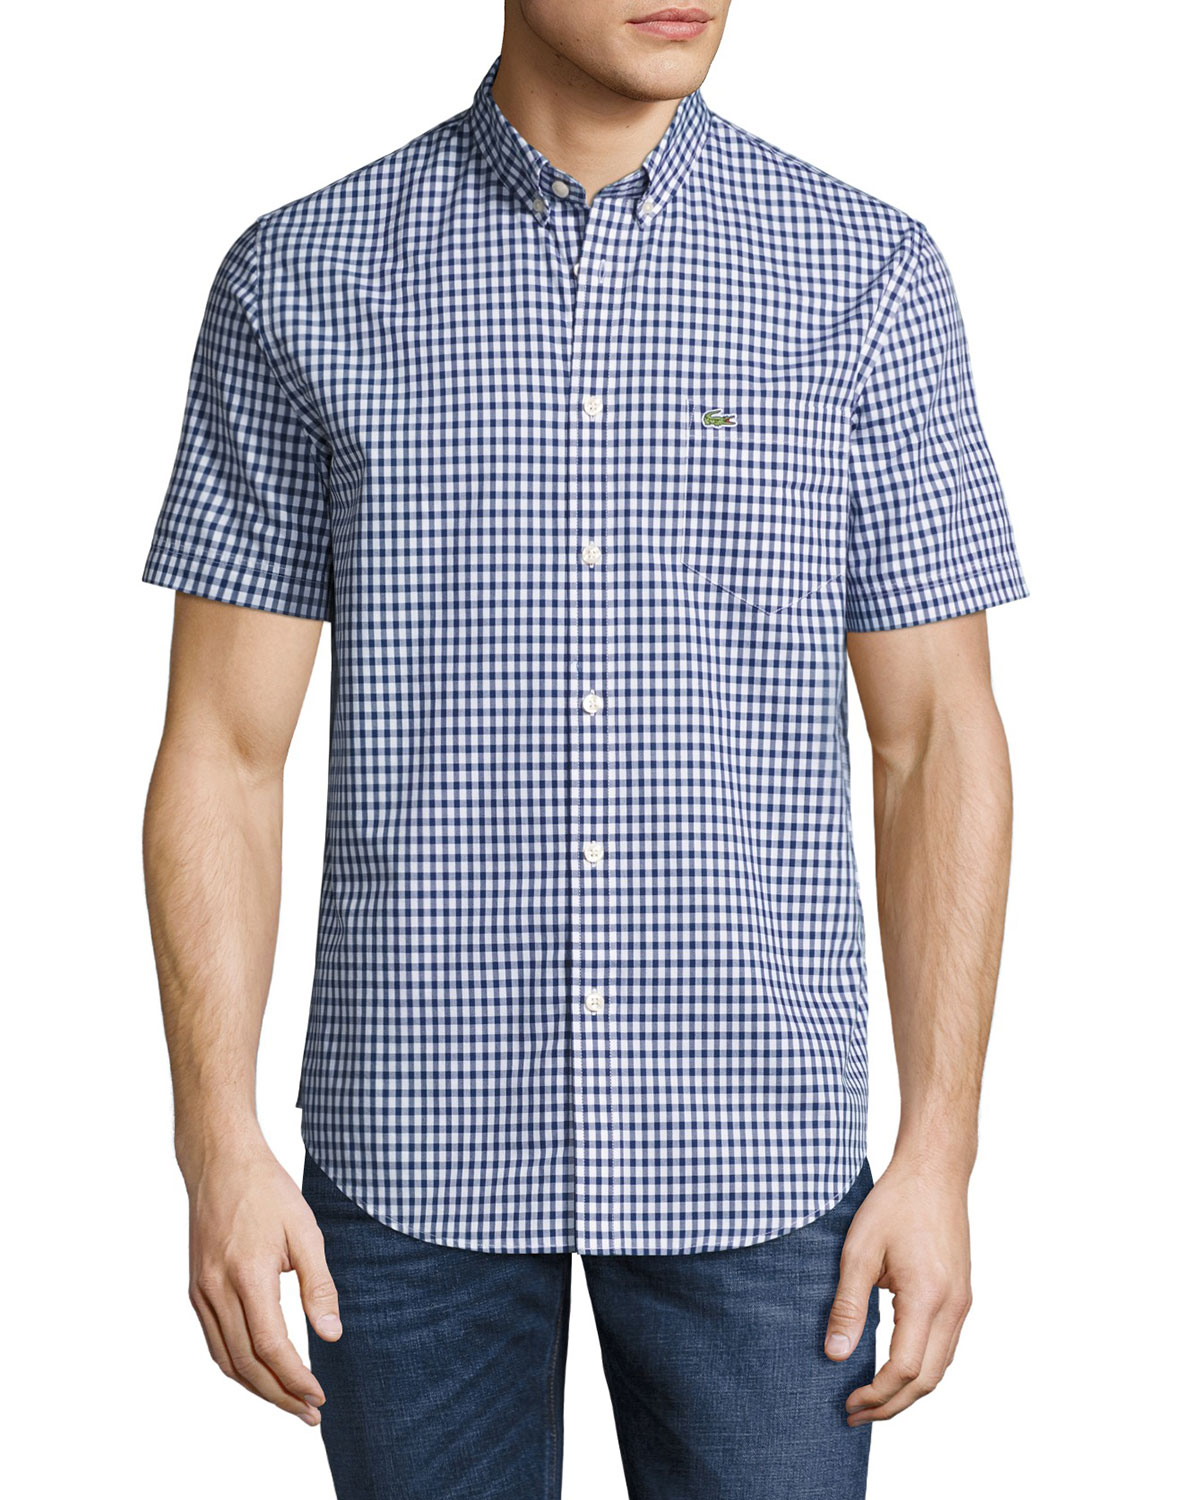 a2c186eed lacoste Short-Sleeve Gingham Shirt